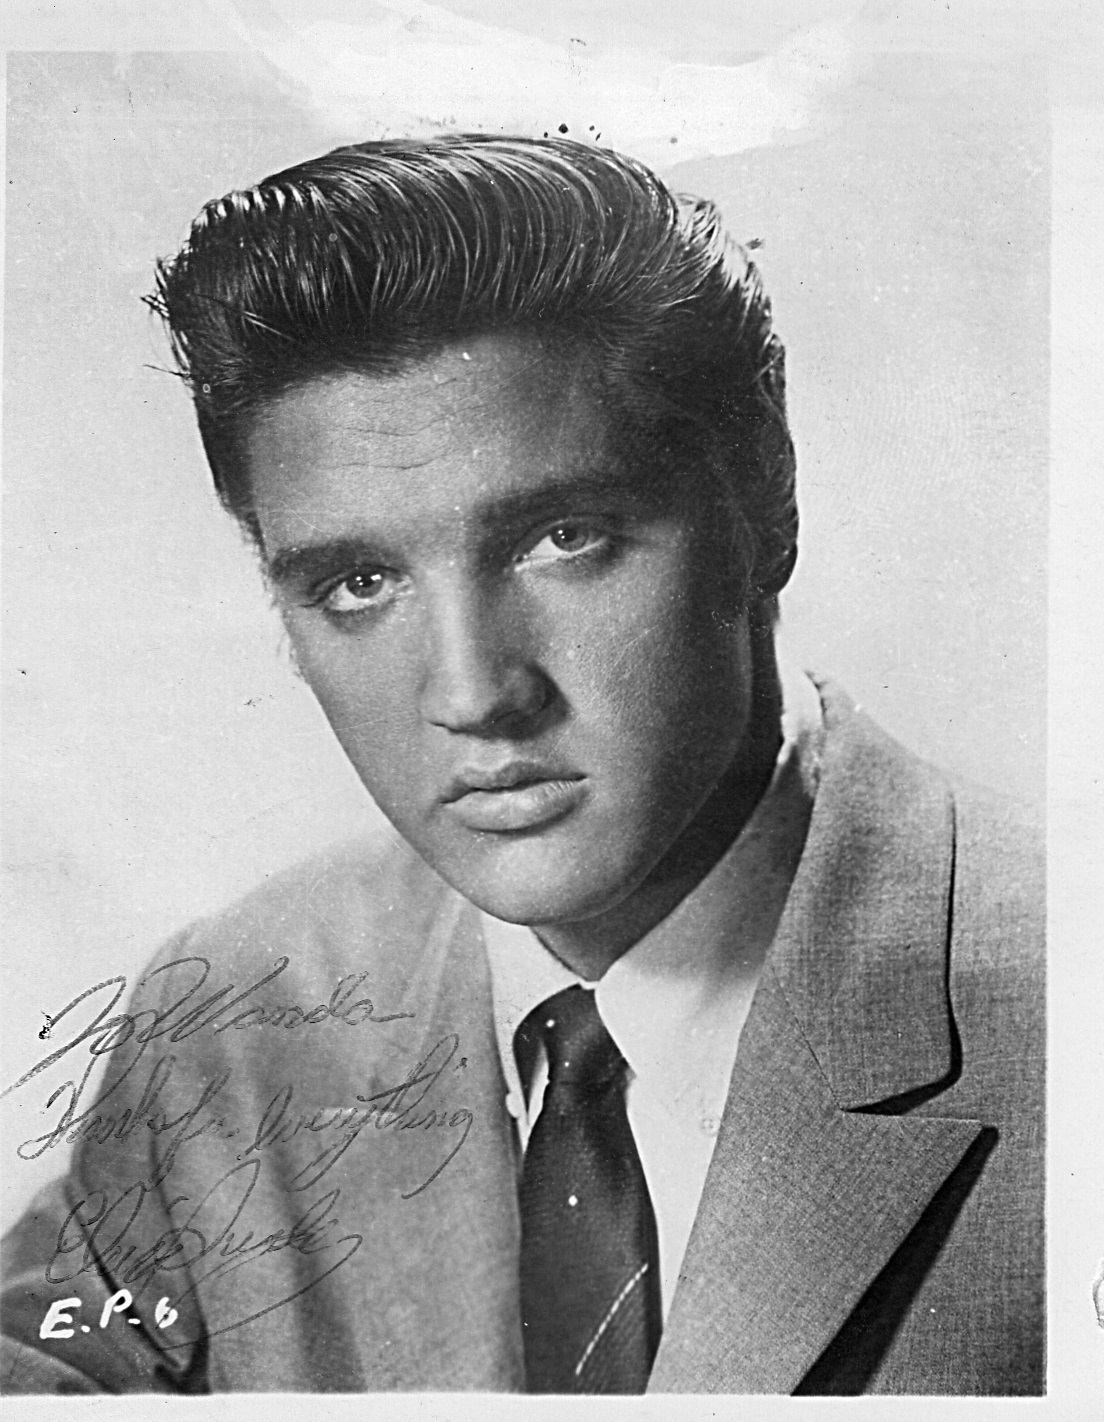 Elvis' autographed photo for Wanda